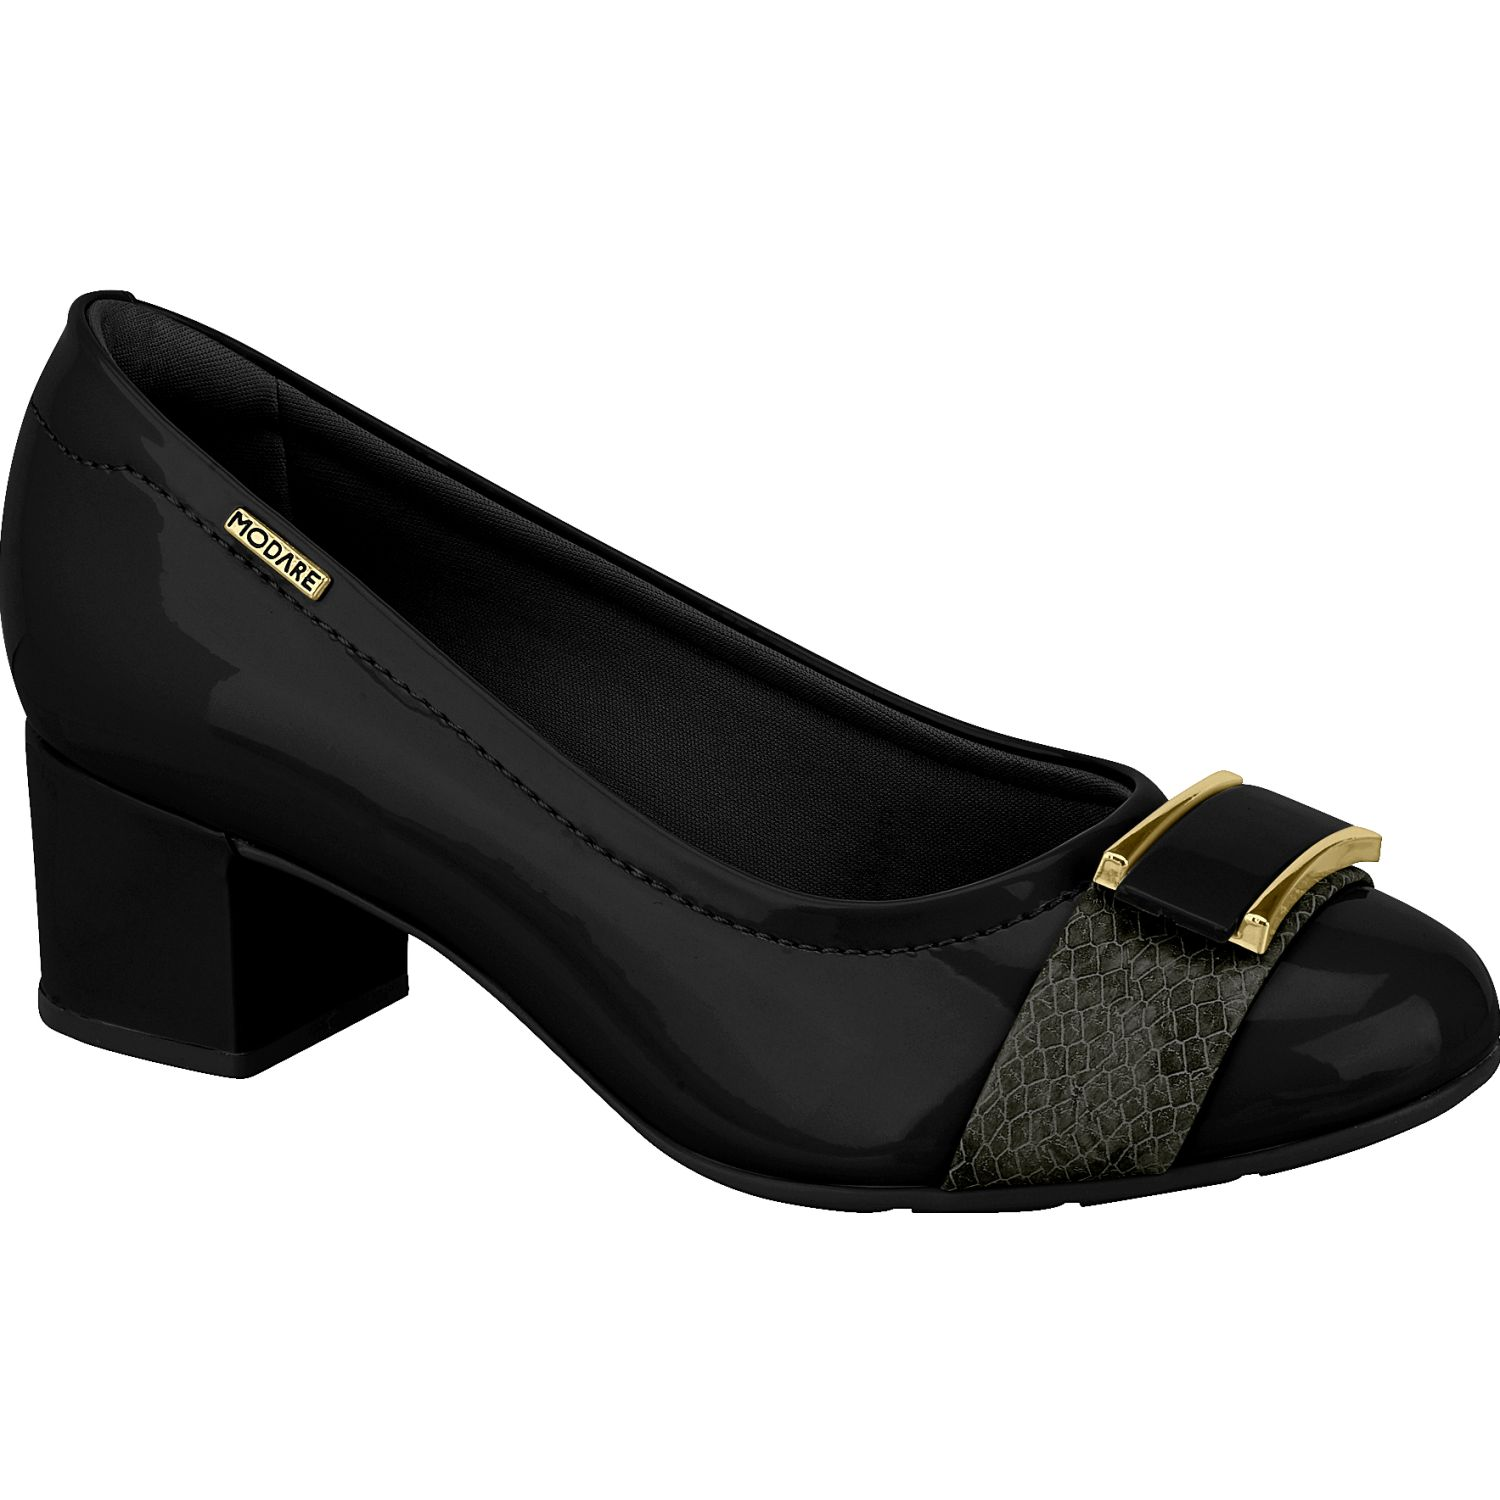 MODARE 7316.117.17809-16554 Negro Estiletos y pumps